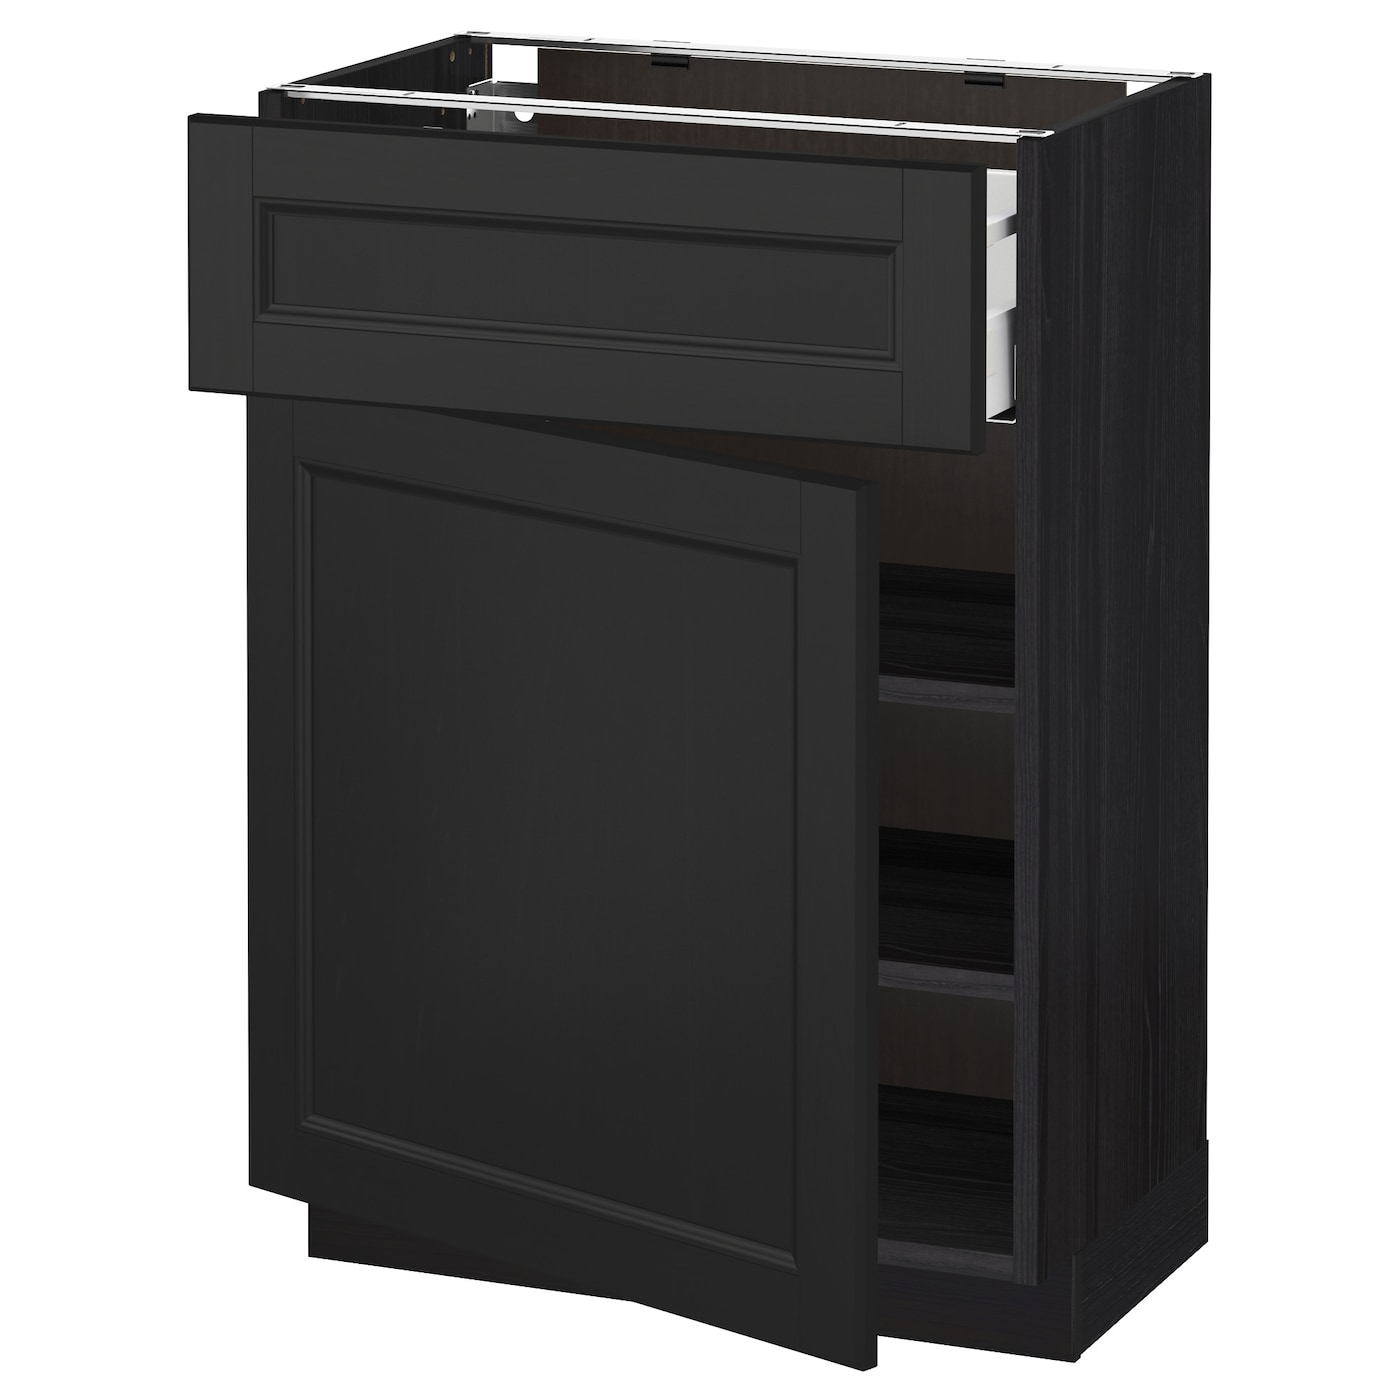 black base kitchen cabinets metod maximera base cabinet with drawer door black laxarby 12317